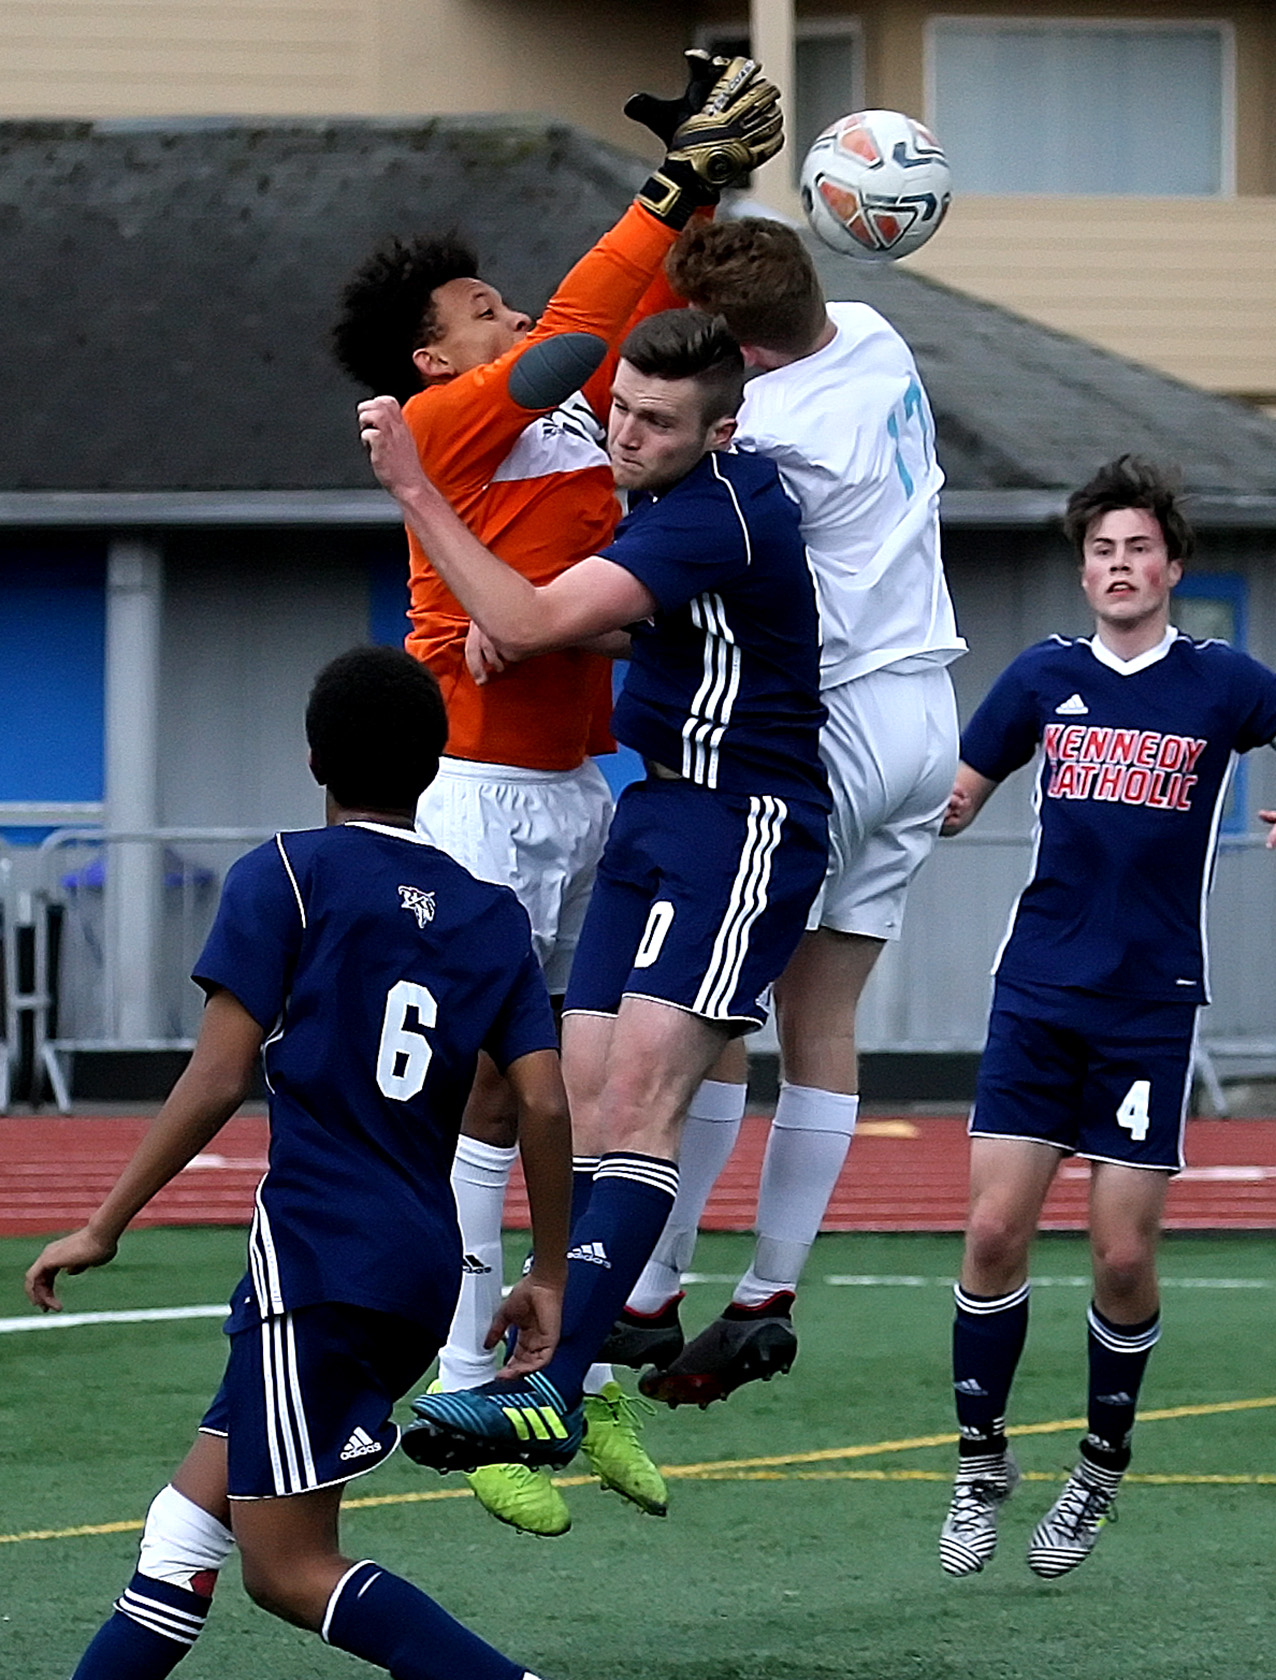 Kennedy Catholic's goalie tries to grab the ball in a crowd.